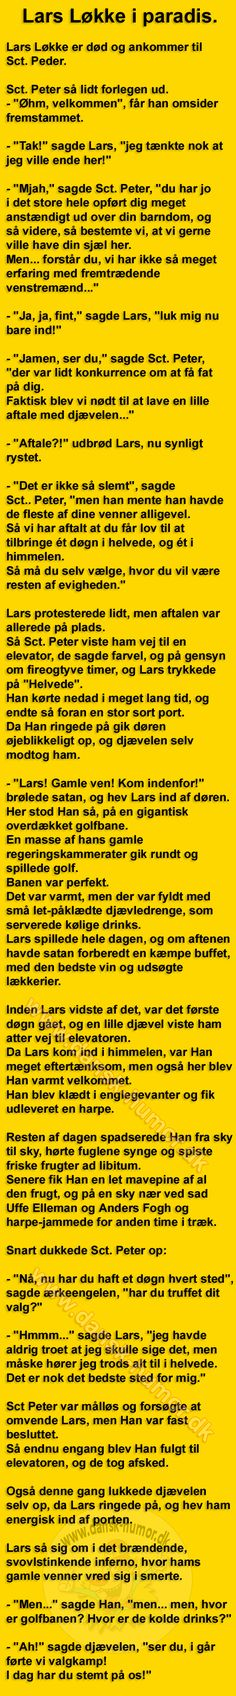 Lars Løkke i paradis. Joke Stories, Heart Quotes, Funny Signs, Whisper, Haha, Funny Quotes, Advice, Words, Makeup